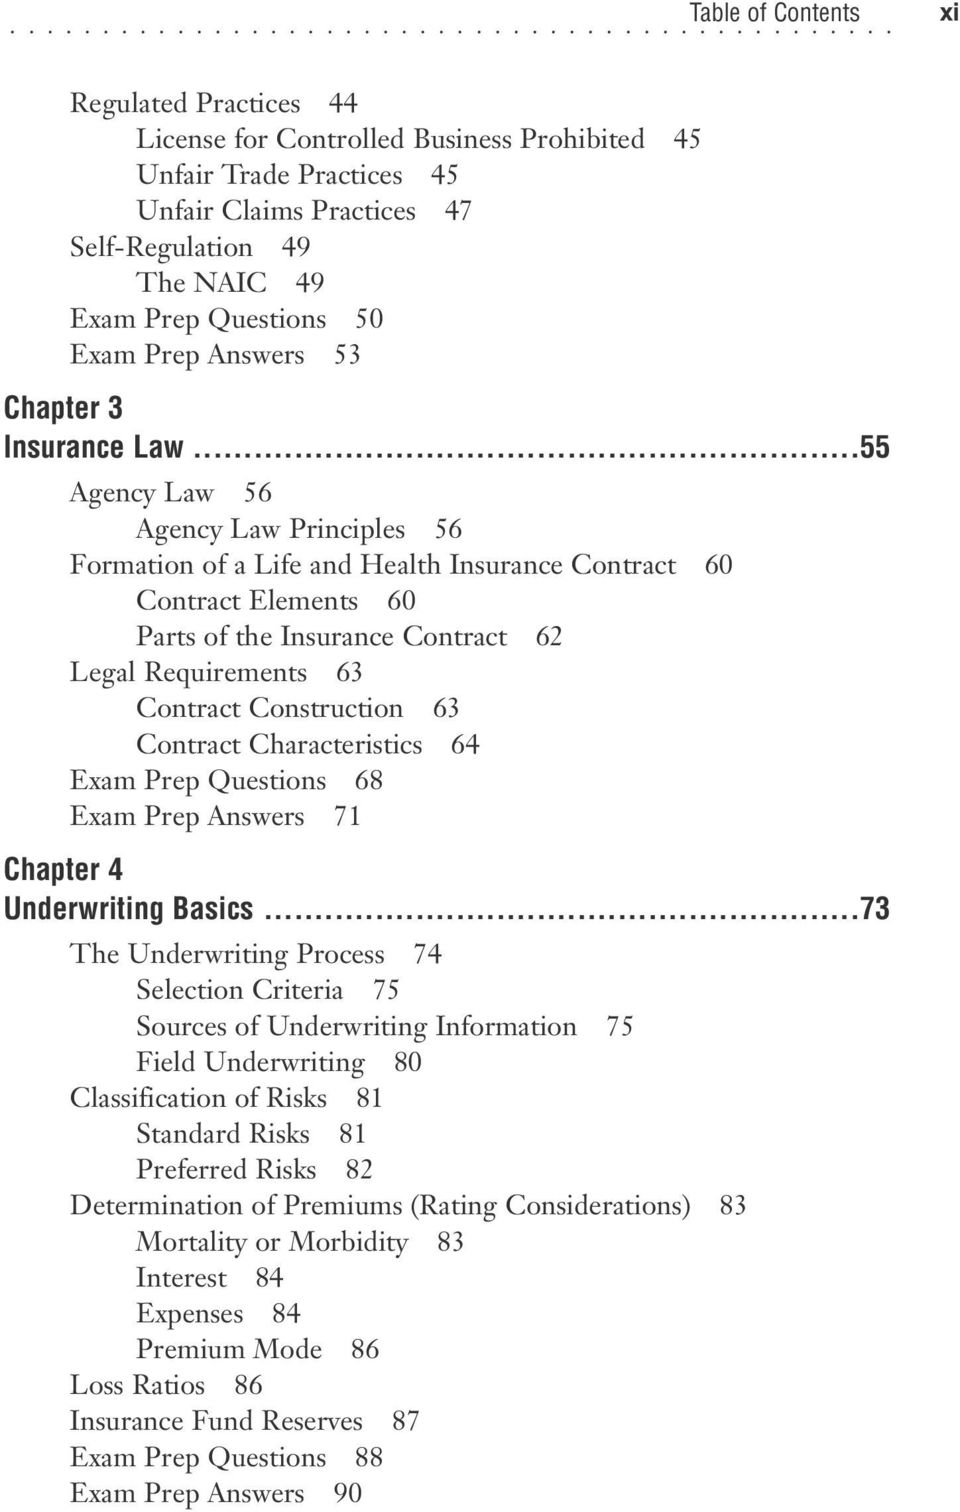 ..55 Agency Law 56 Agency Law Principles 56 Formation of a Life and Health Insurance Contract 60 Contract Elements 60 Parts of the Insurance Contract 62 Legal Requirements 63 Contract Construction 63